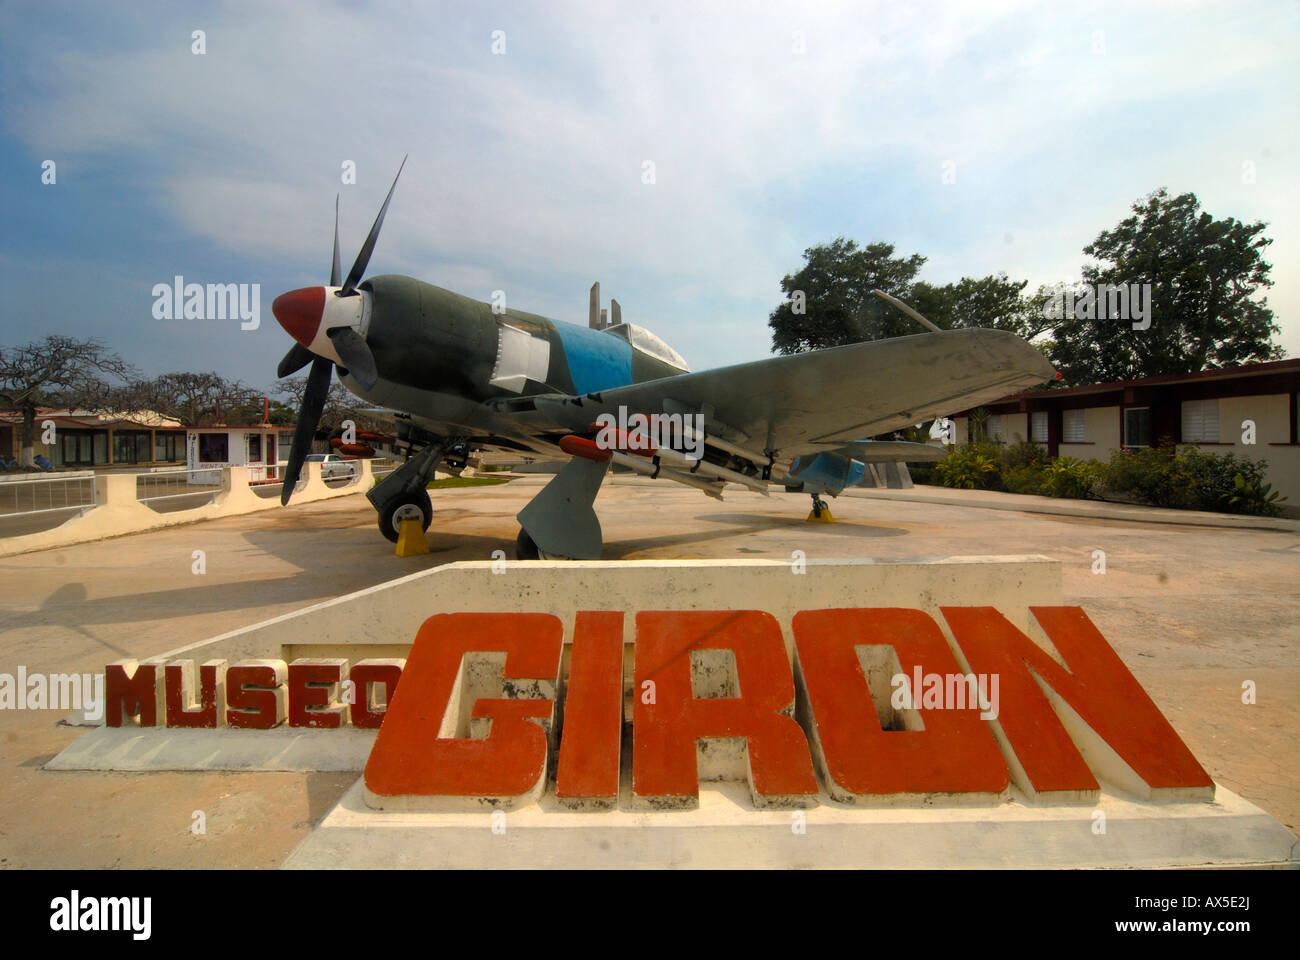 Military airplane in front of the Girón Museum, Bay of Pigs, Cuba, Caribbean - Stock Image